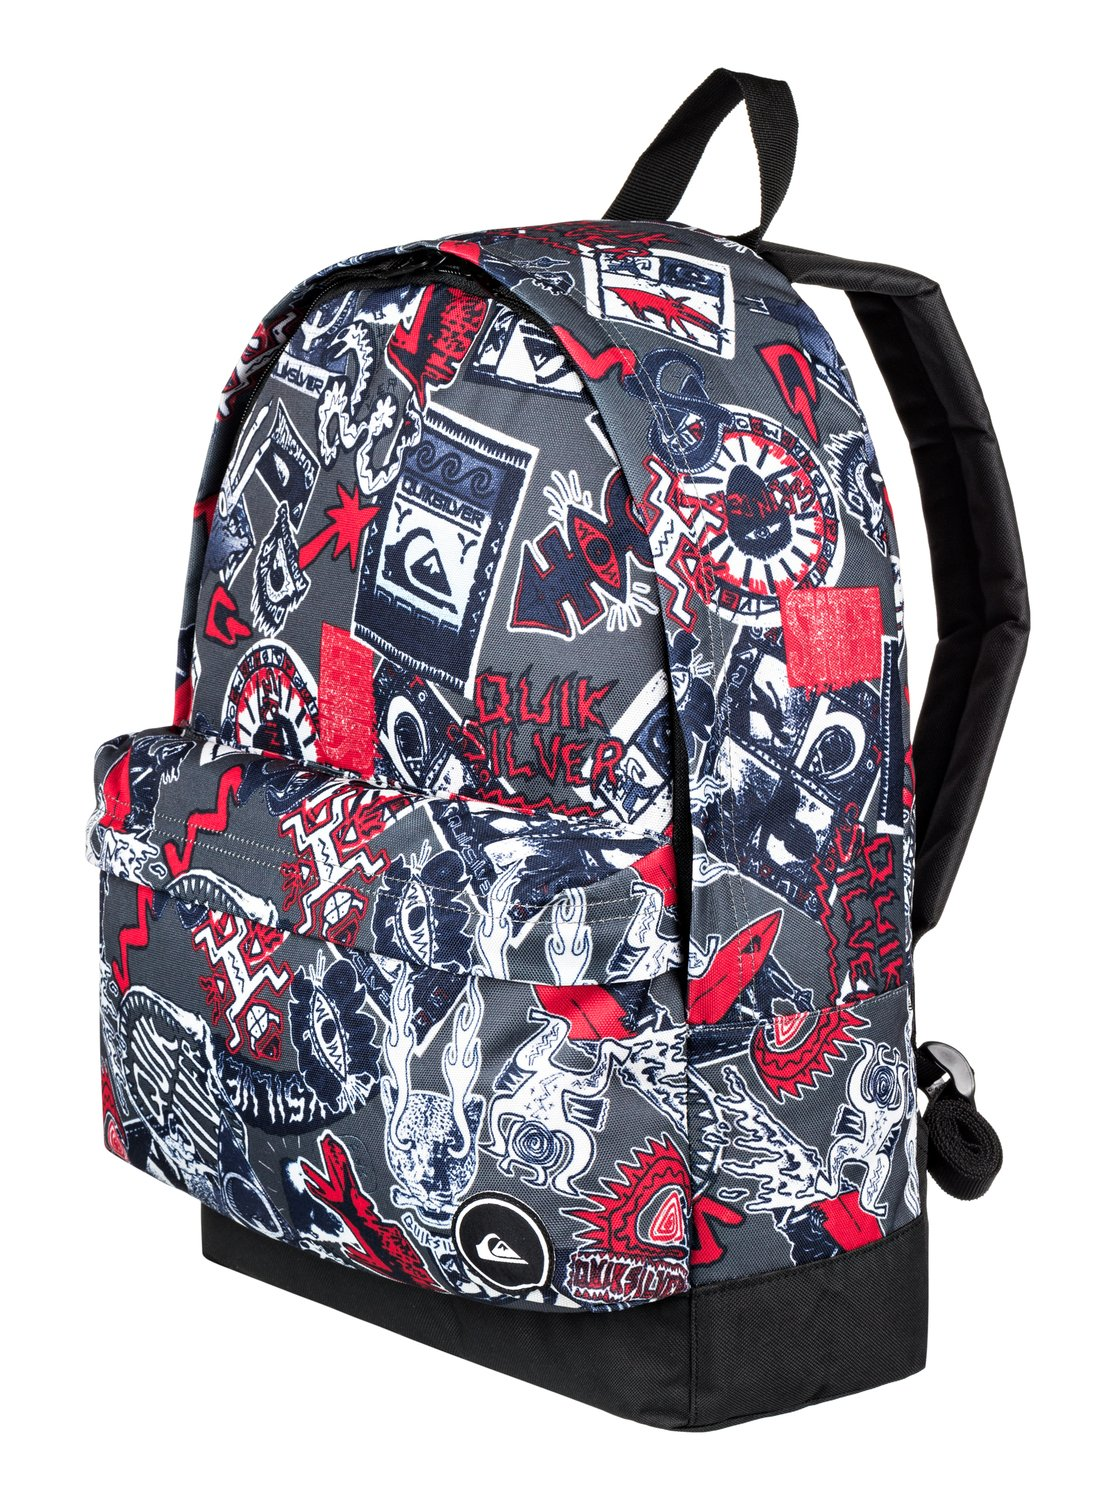 Quiksilver-Everyday-Poster-25L-Sac-a-dos-taille-moyenne-Homme miniature 17